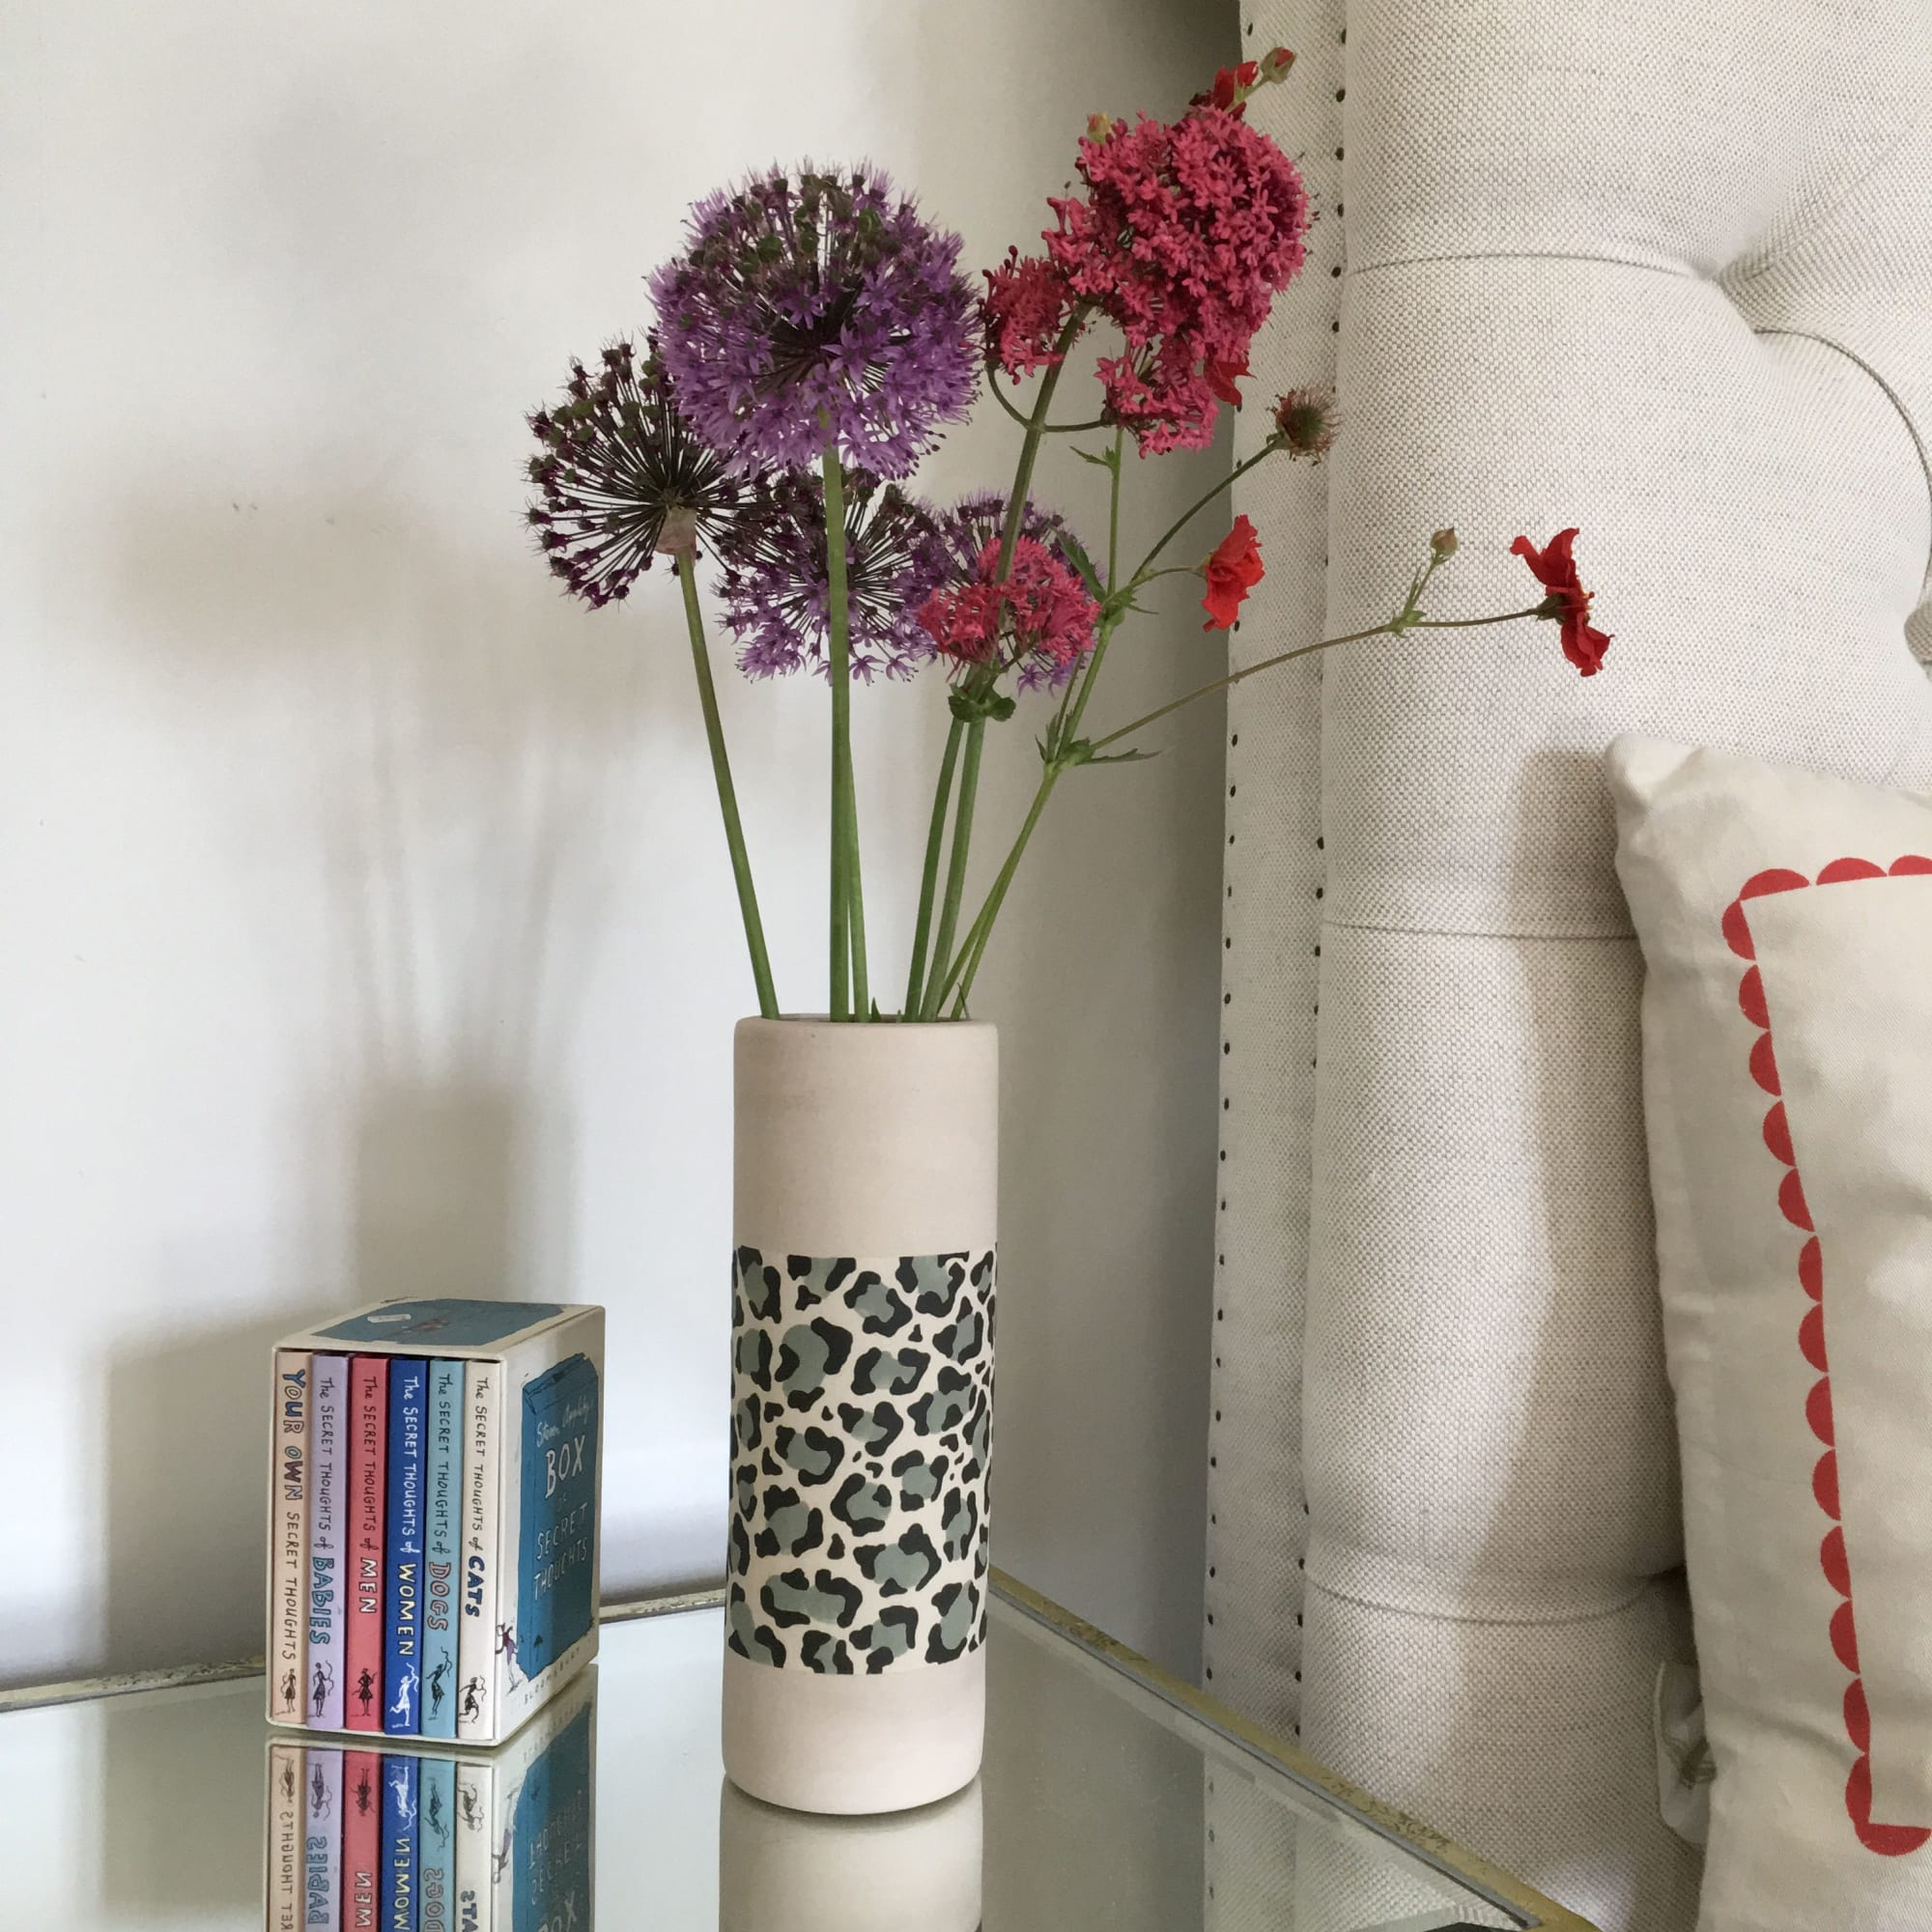 Clean Cylindrical Vase in Cheeta Print